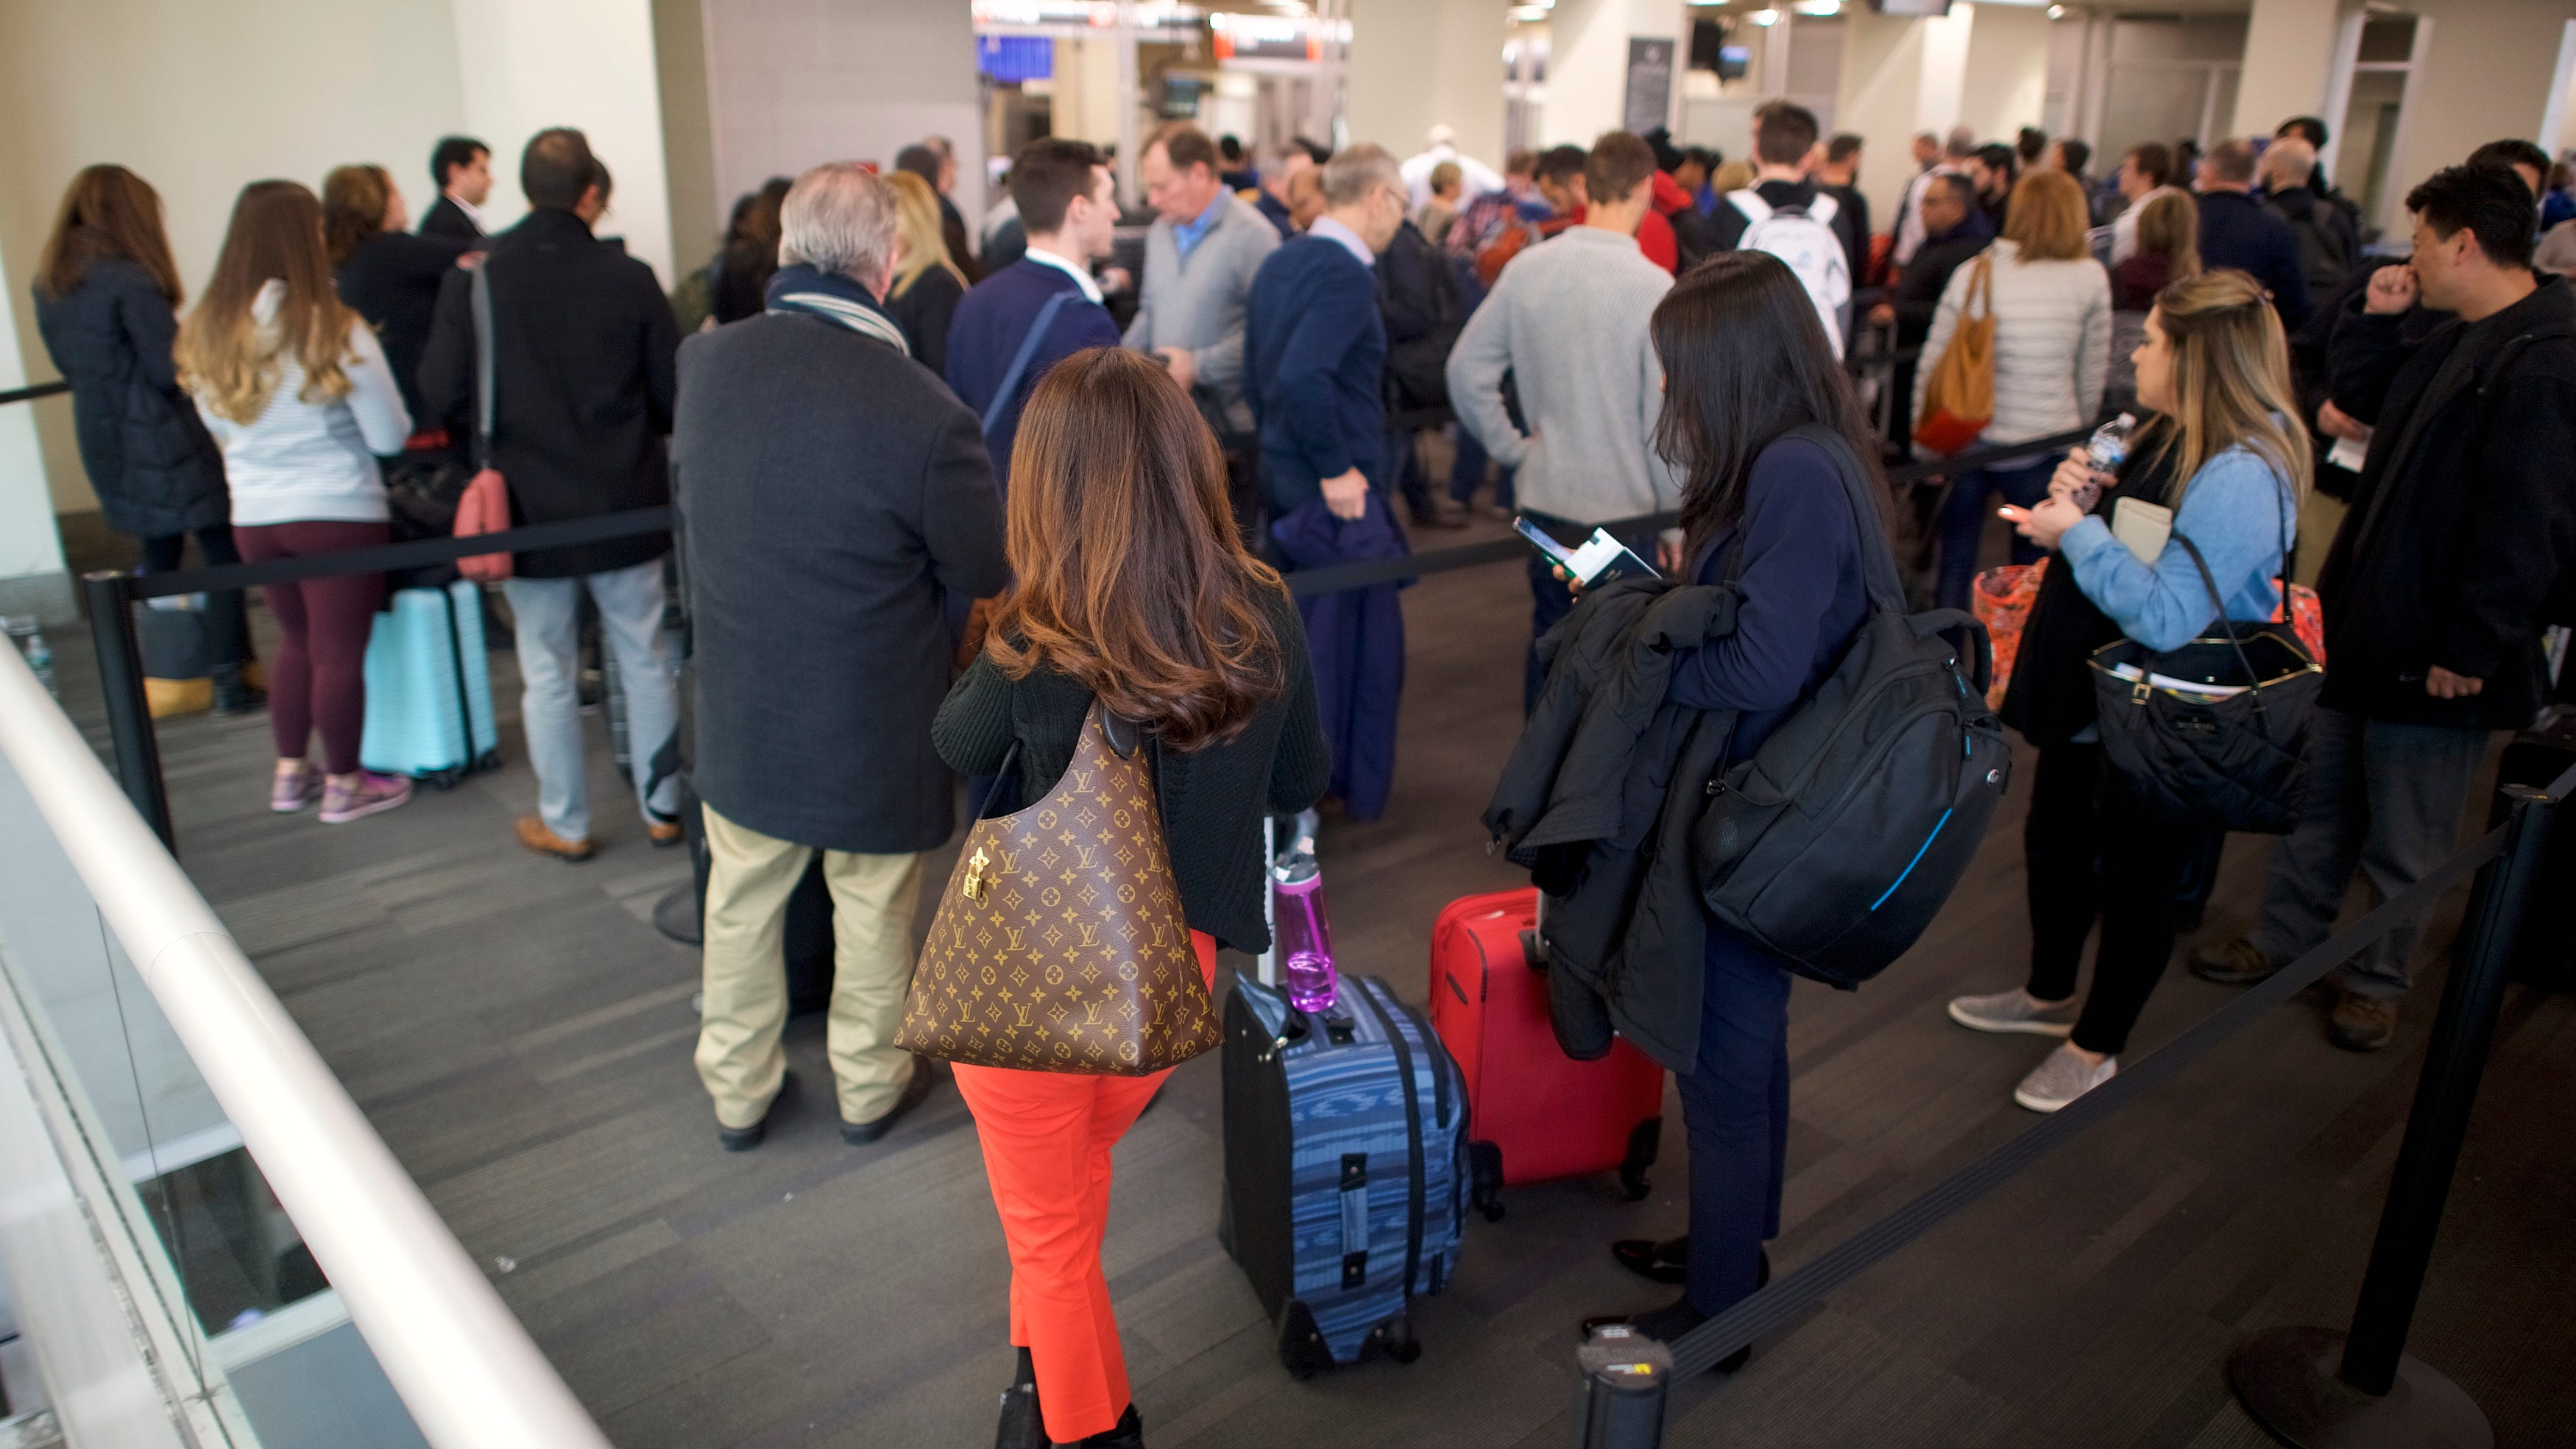 Philly airport in a hiring frenzy to keep up with increased travel